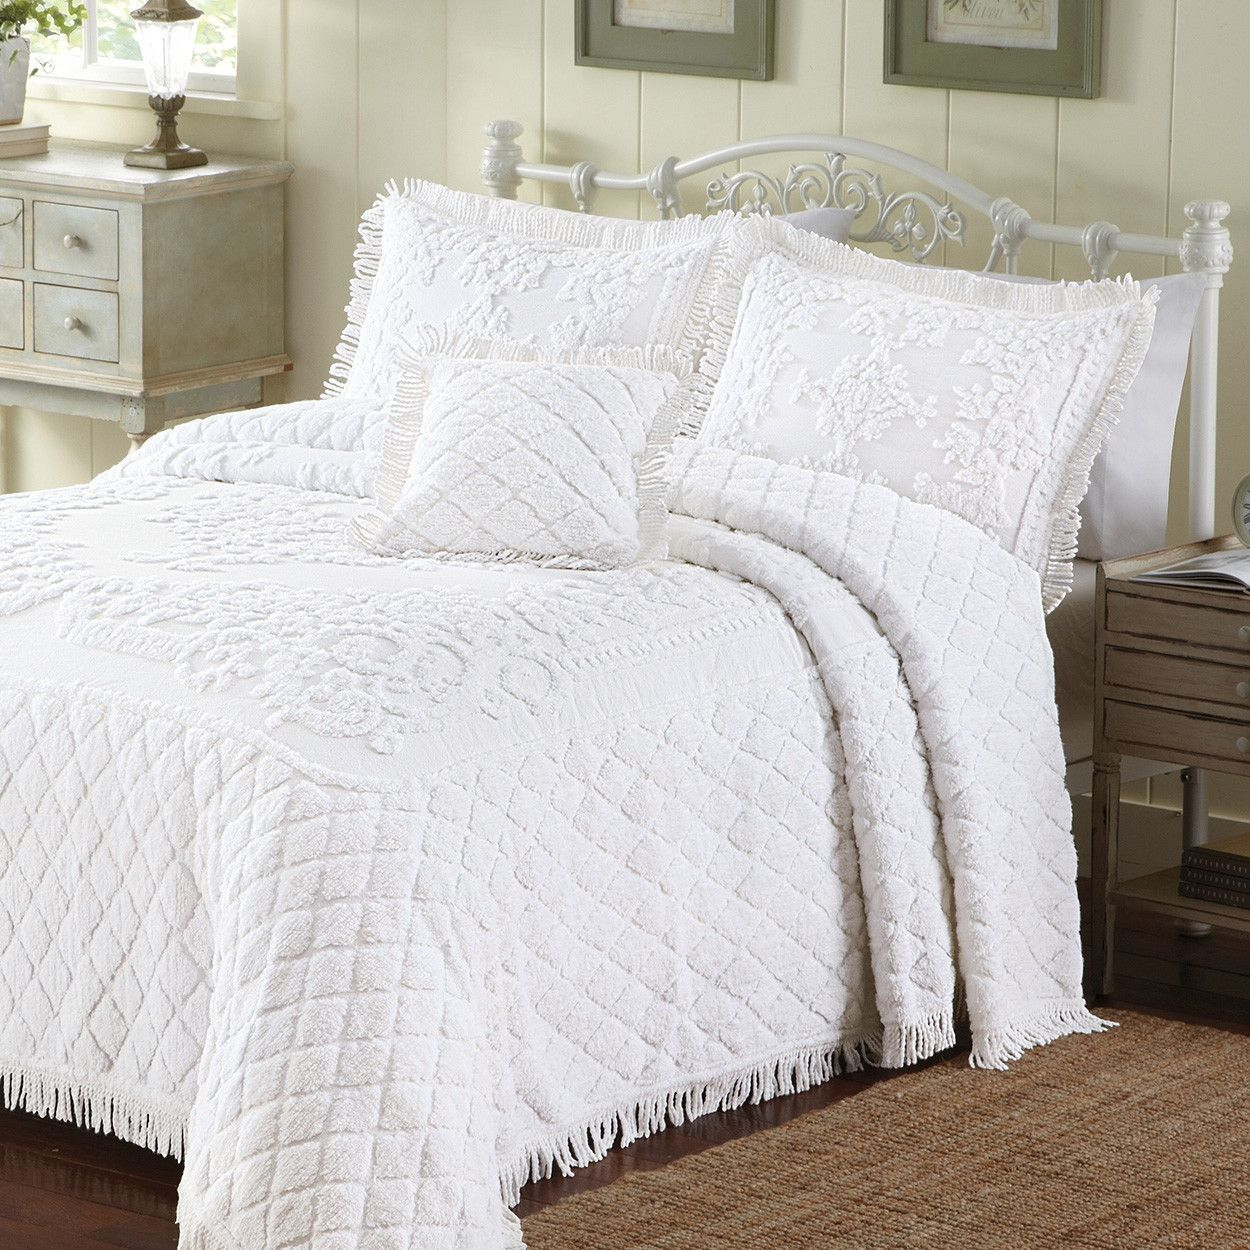 King Size White Cotton Chenille Bedspread in Retro Vintage Style